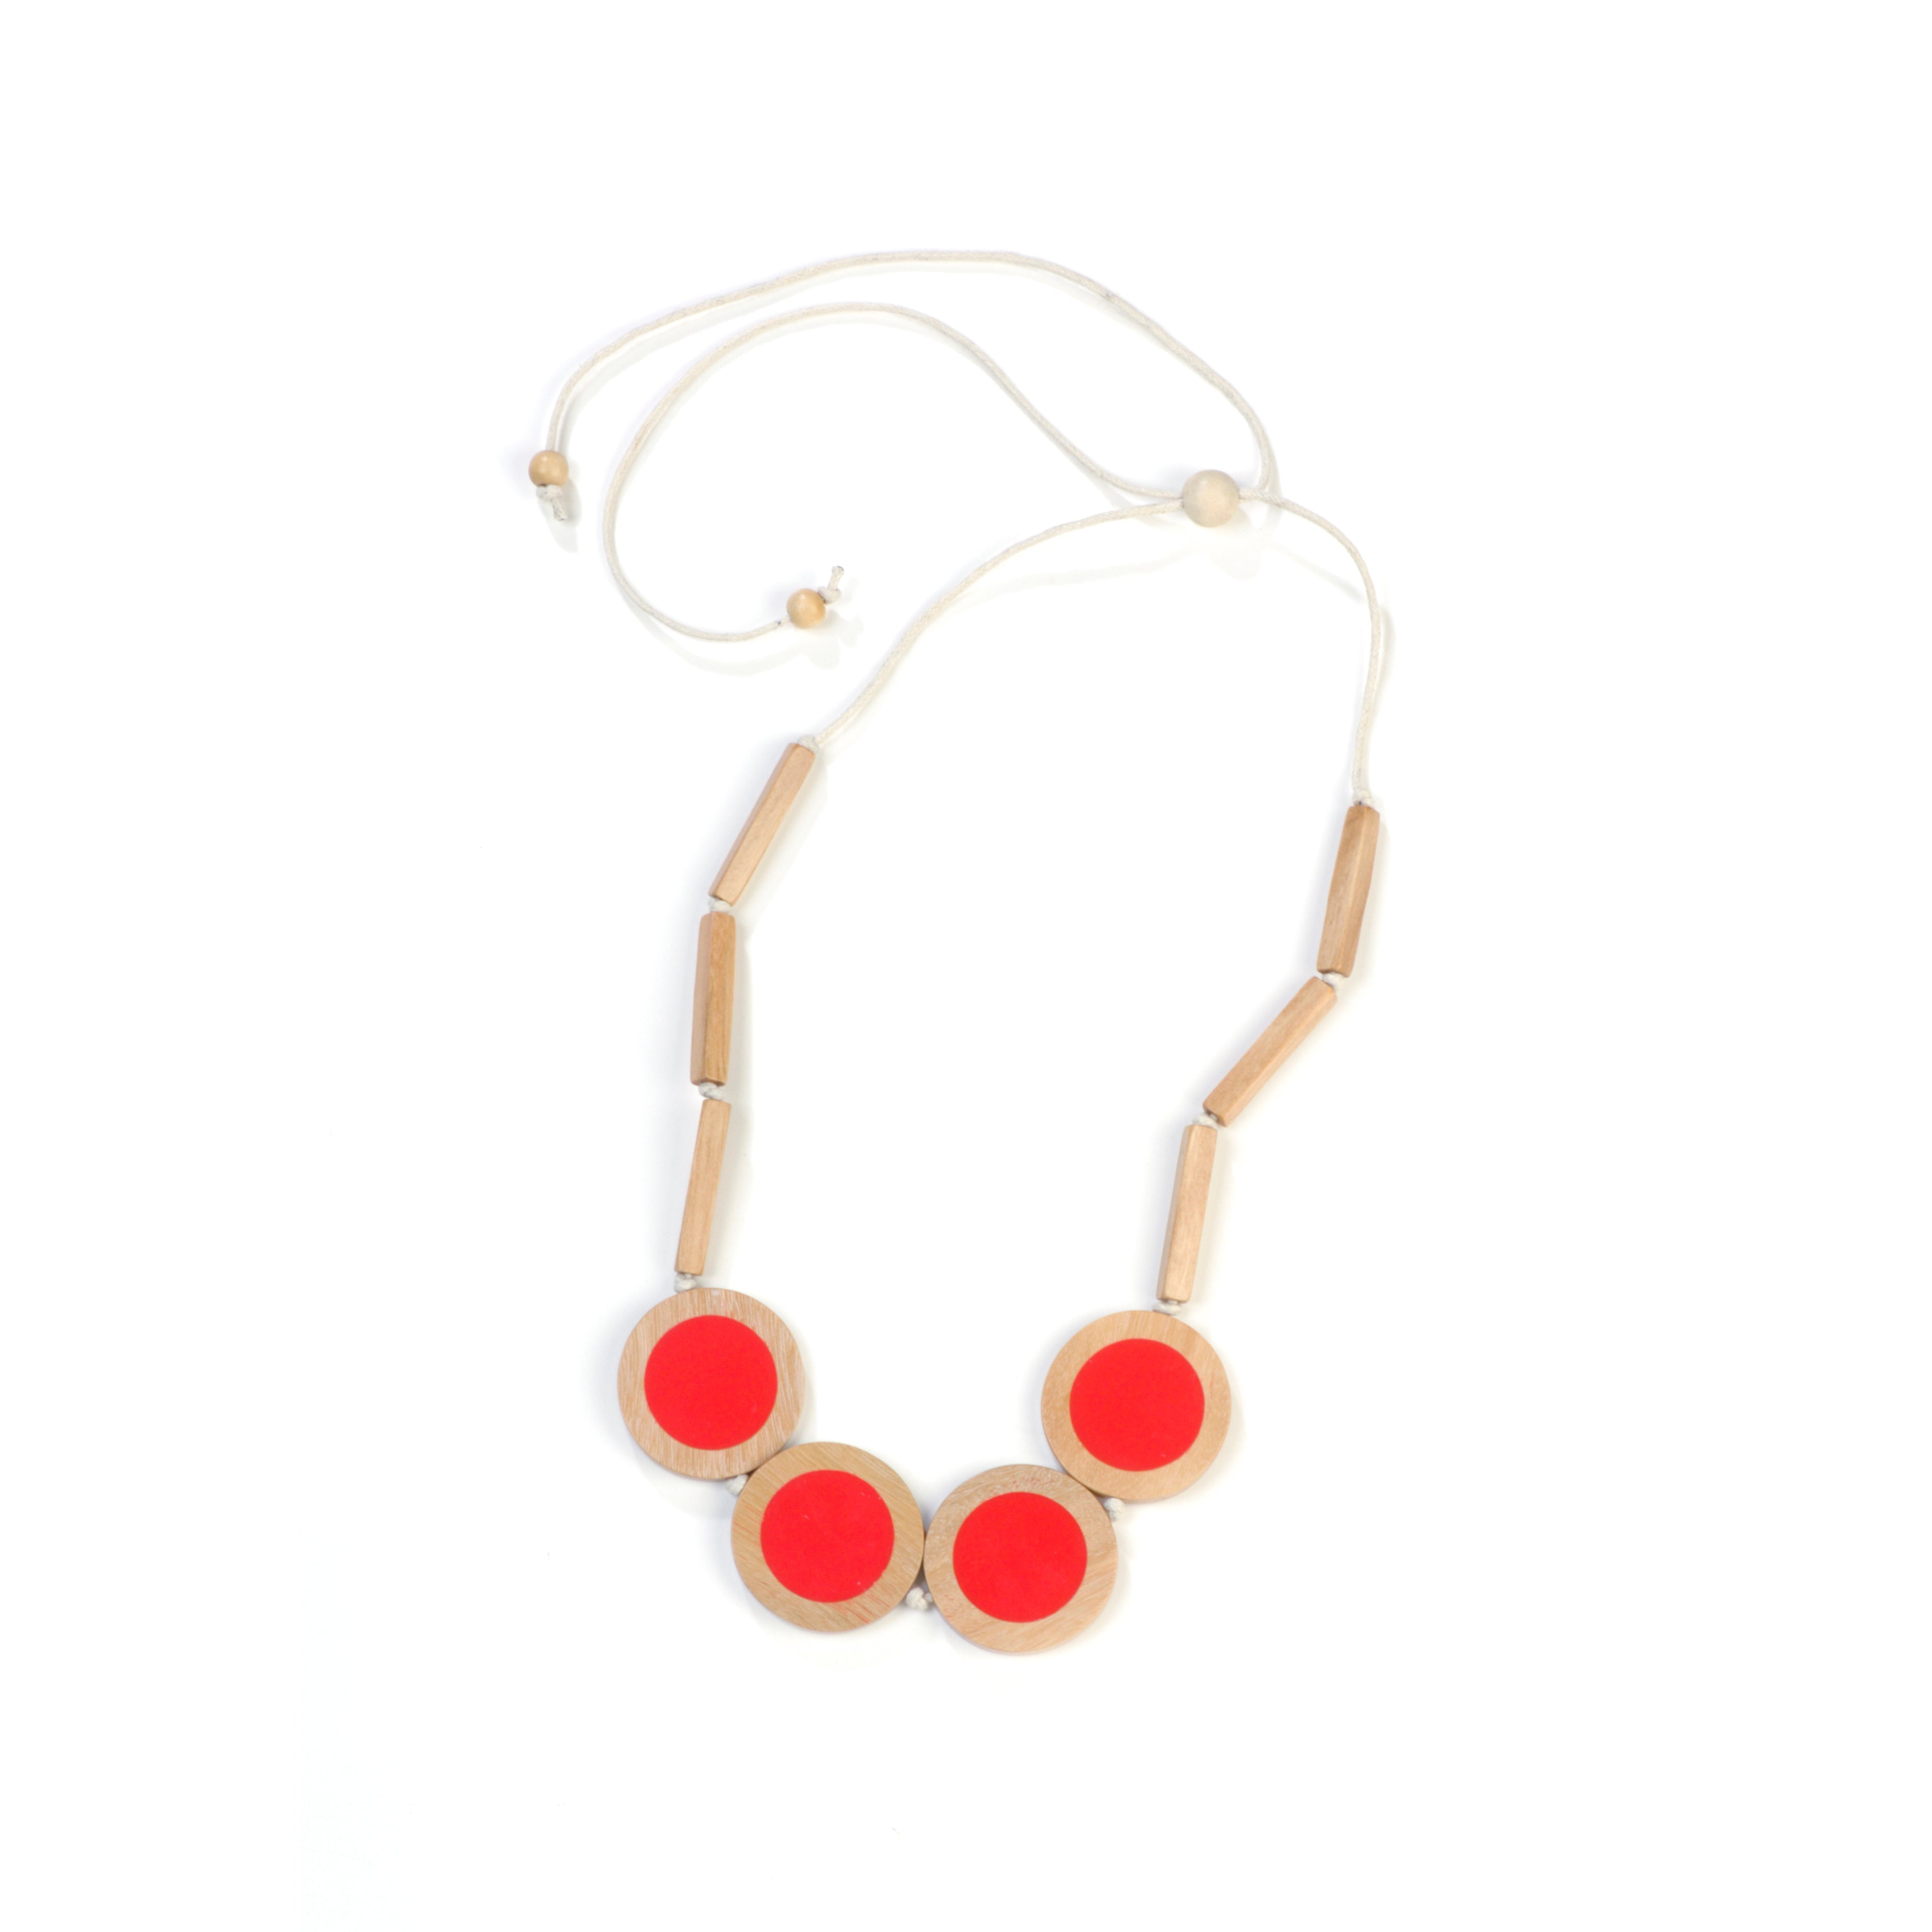 Resin Circles necklace